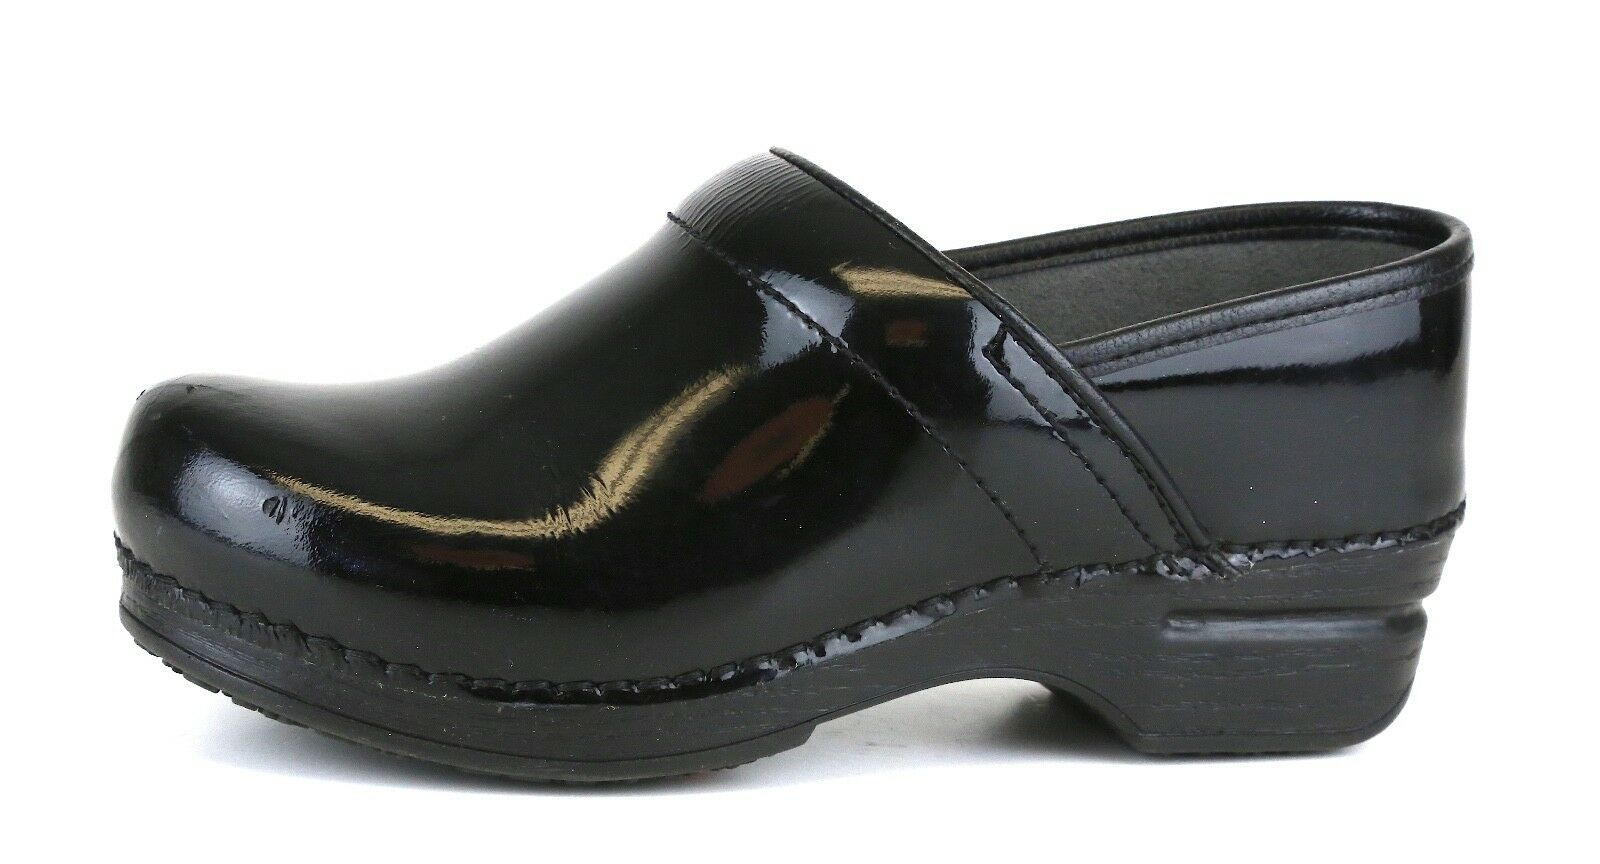 Dansko Professional XP Patent Leather Leather Leather Clog Black Women Sz 36 EUR 4830 bd48e5